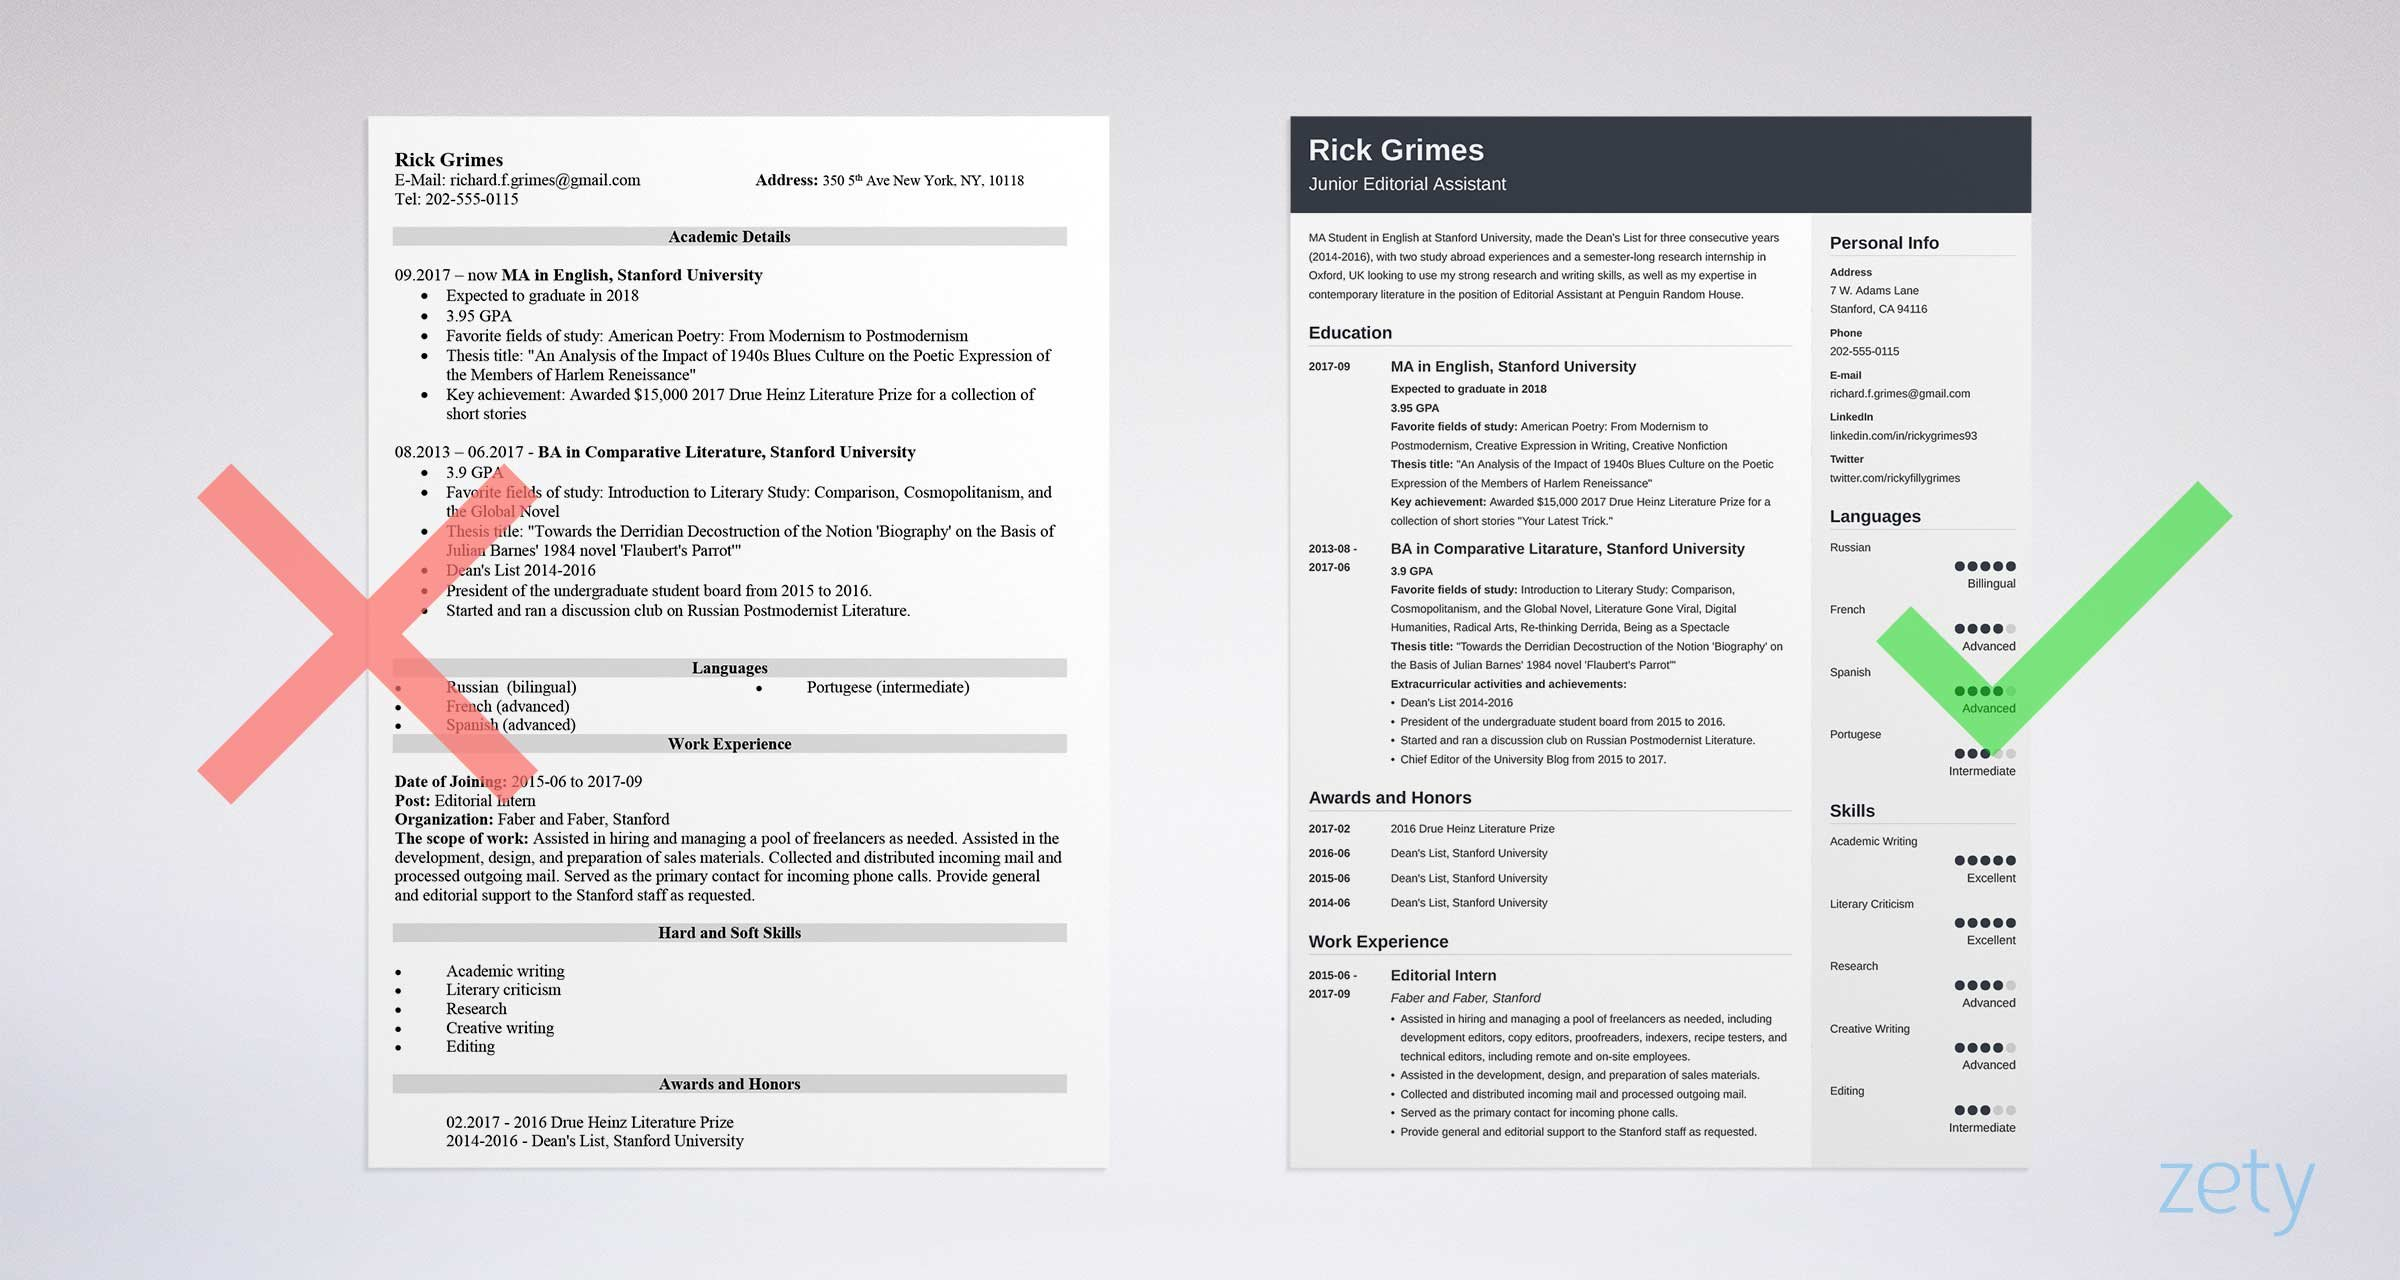 Medical Student Resume Template - Entry Level Resume Sample and Plete Guide [ 20 Examples]